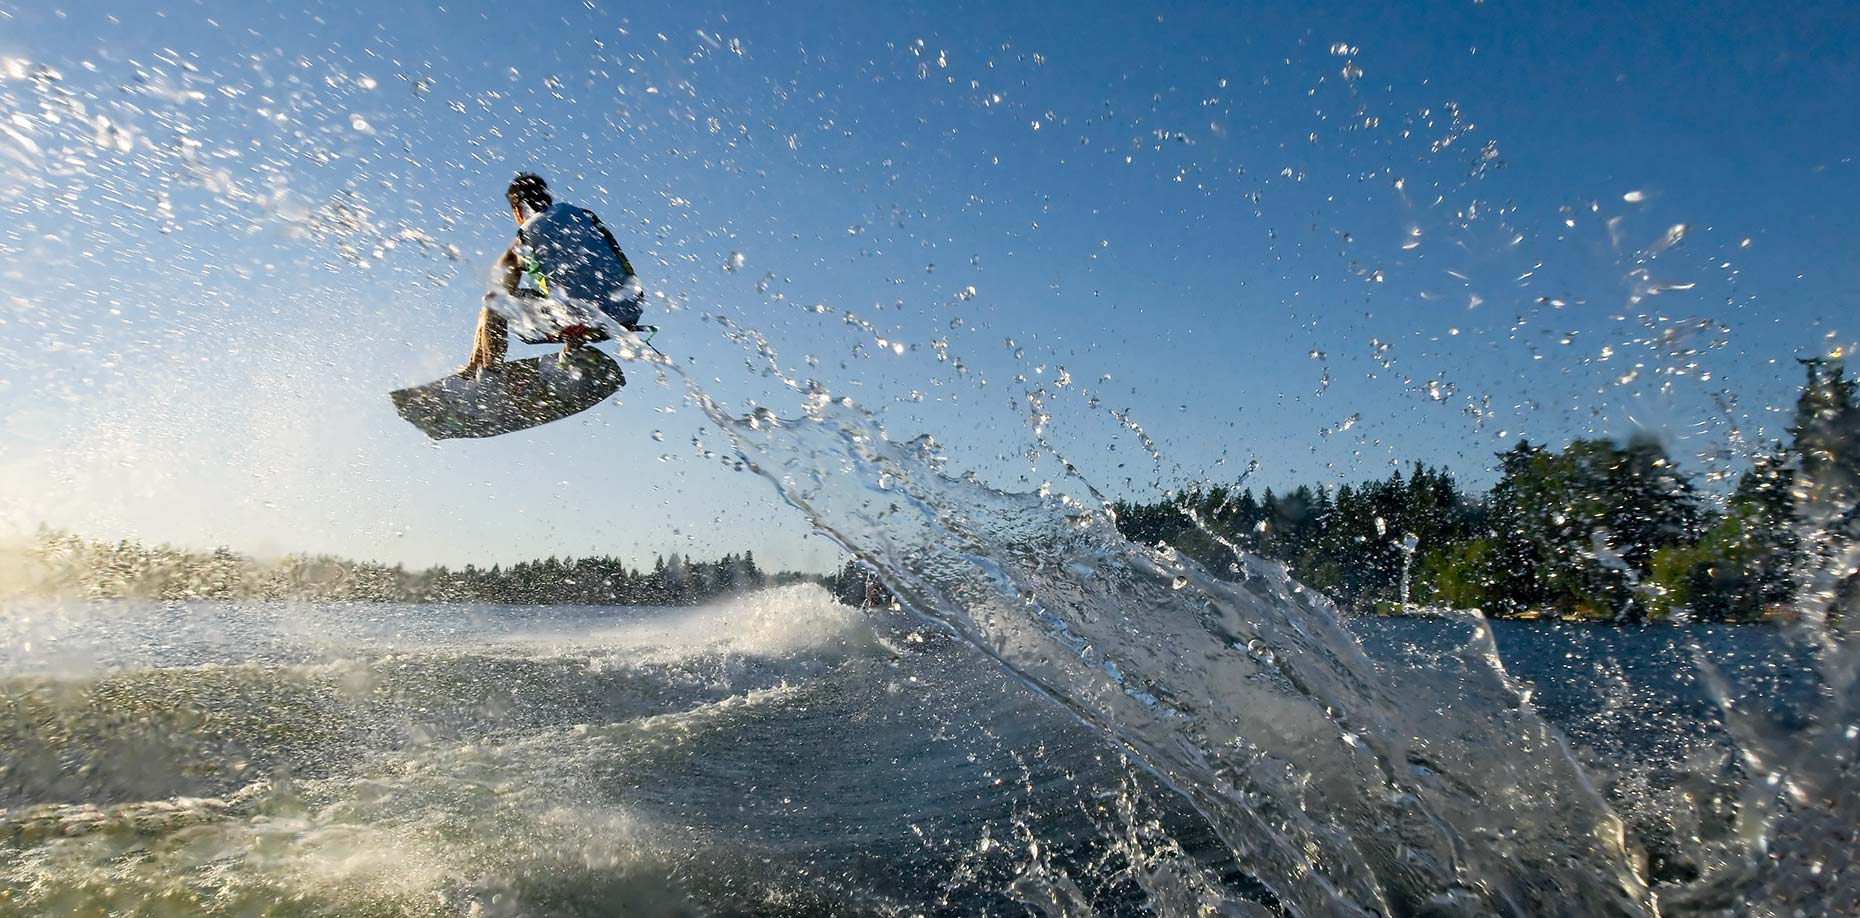 Ian-Coble-Wakeboard-Underwater